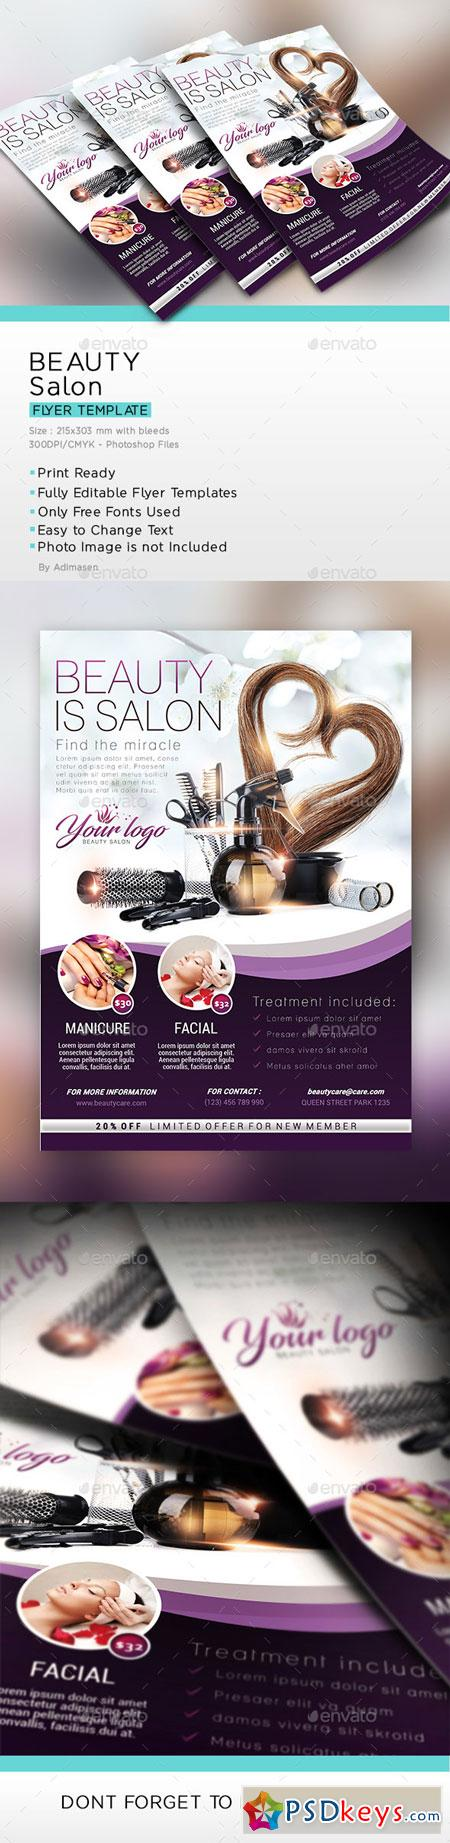 Beauty Salon Flyer 22609300